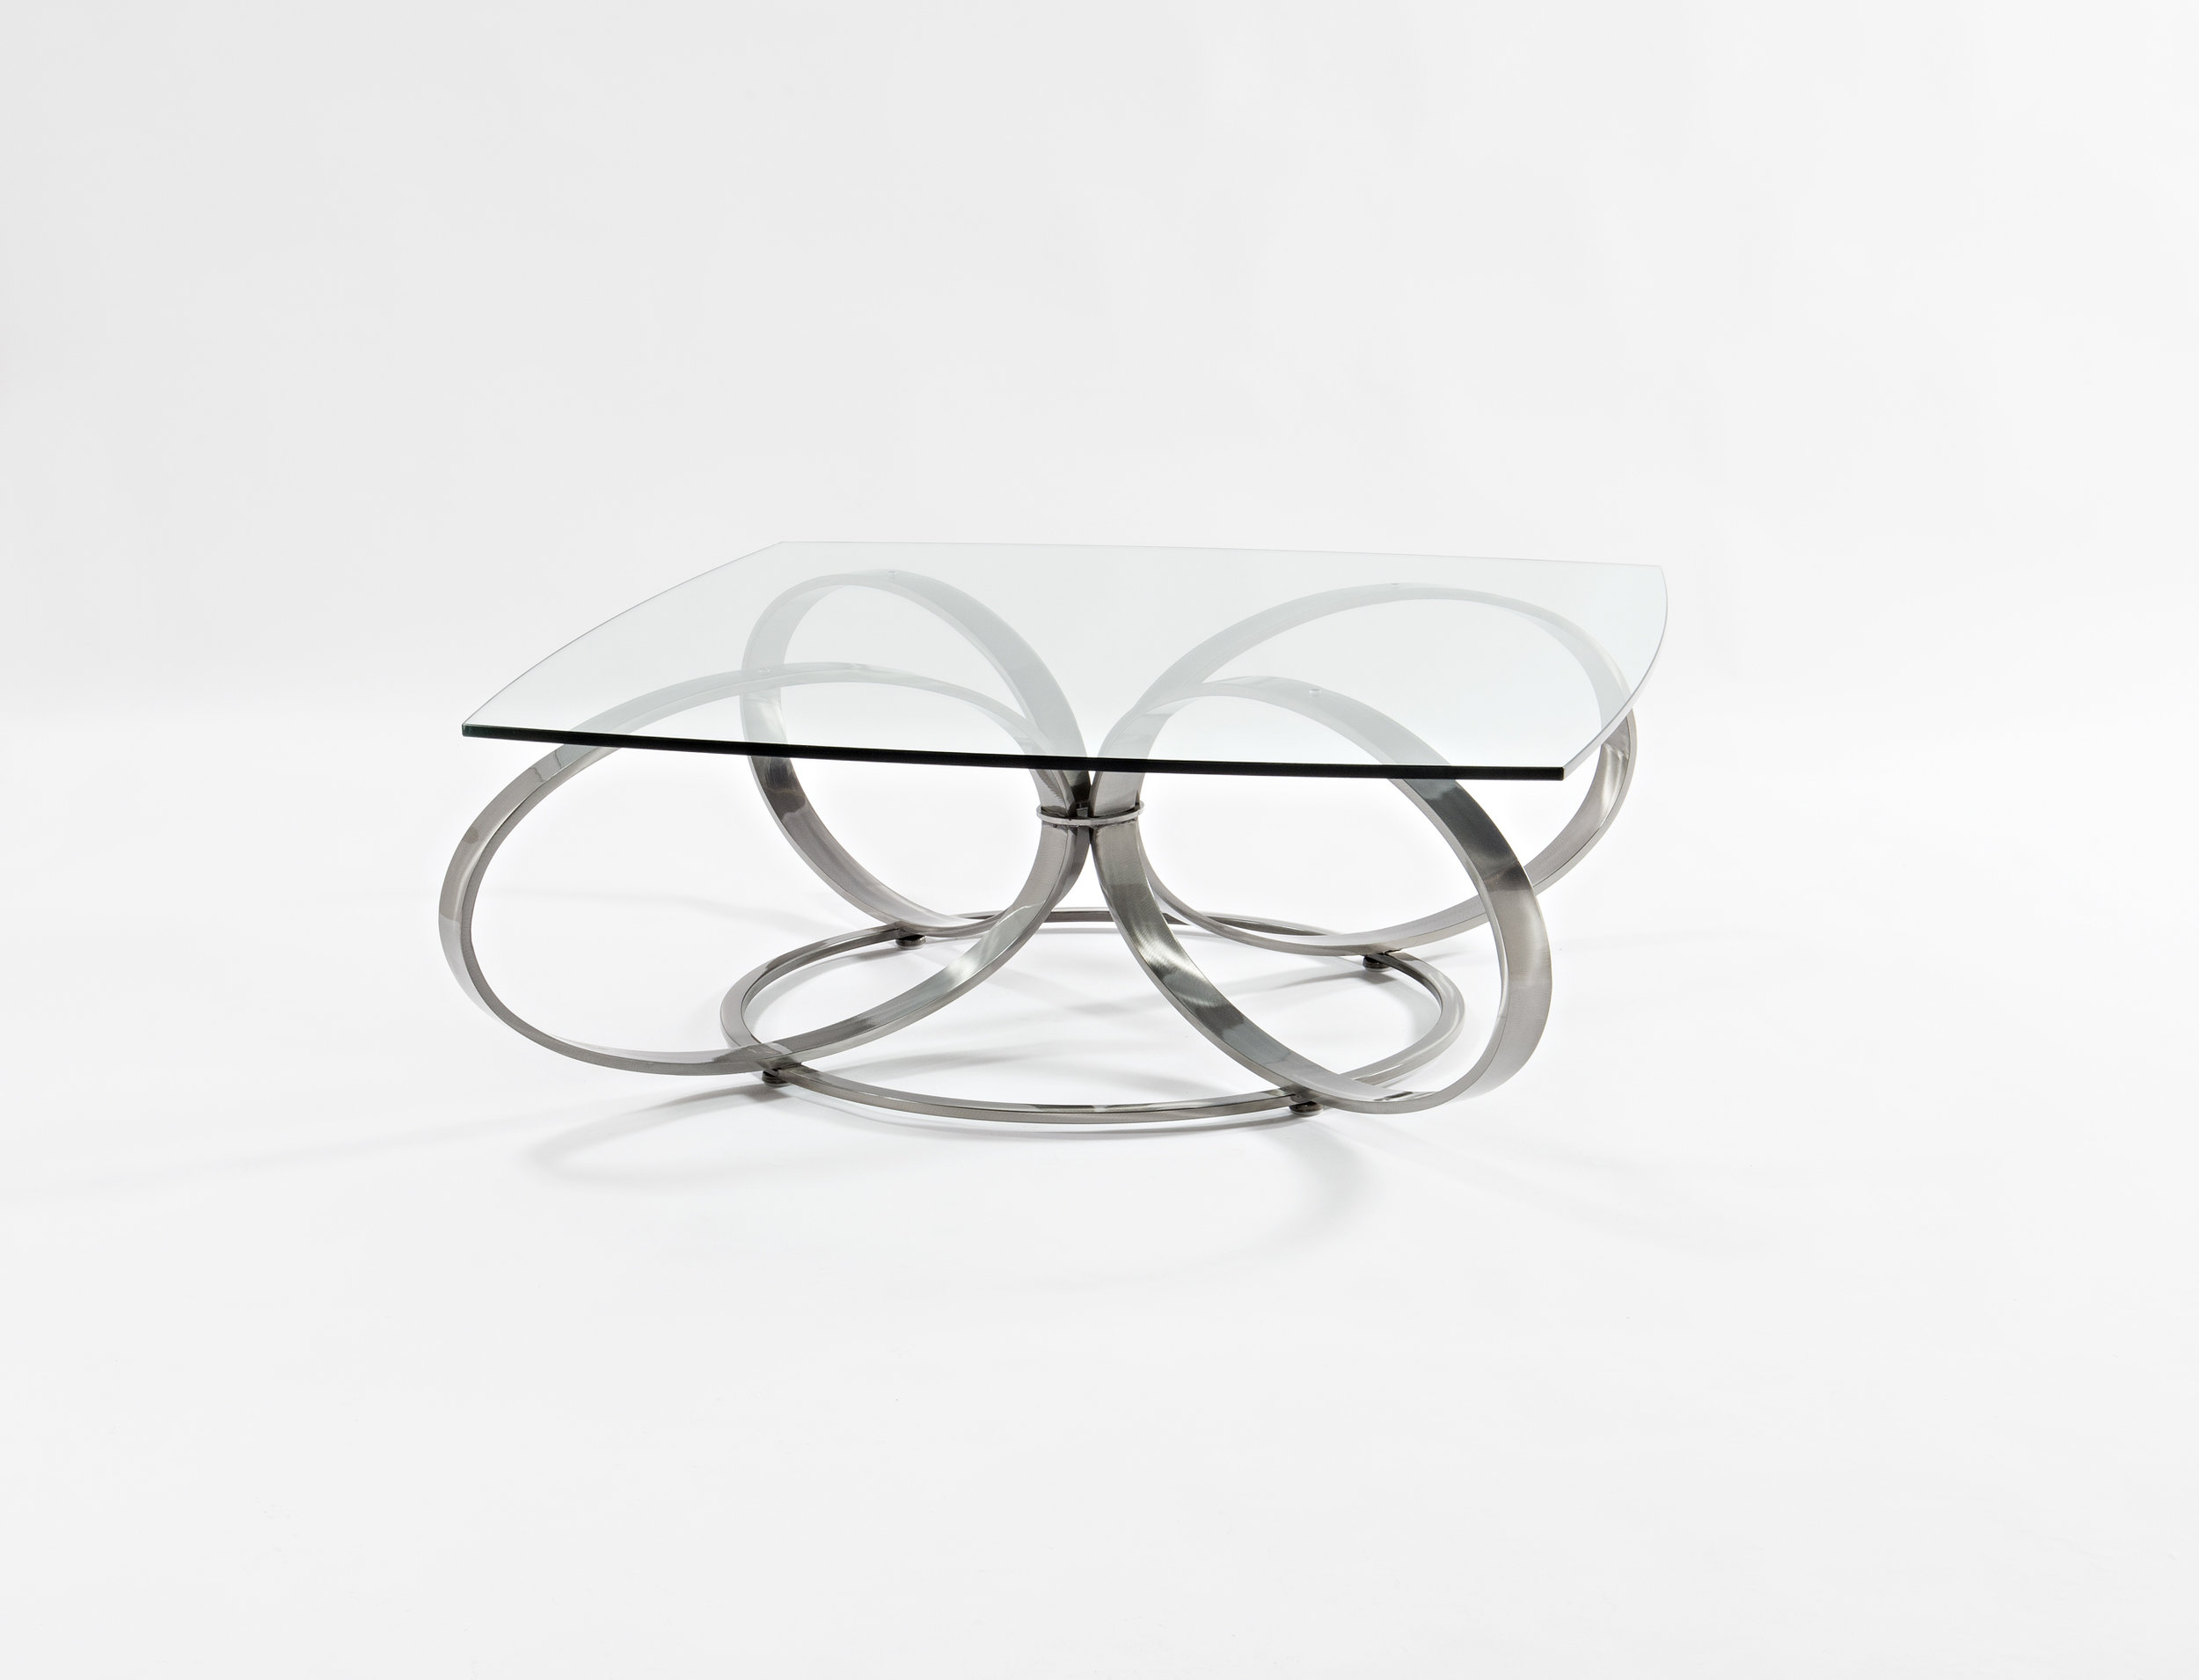 Fiore Cocktail Table